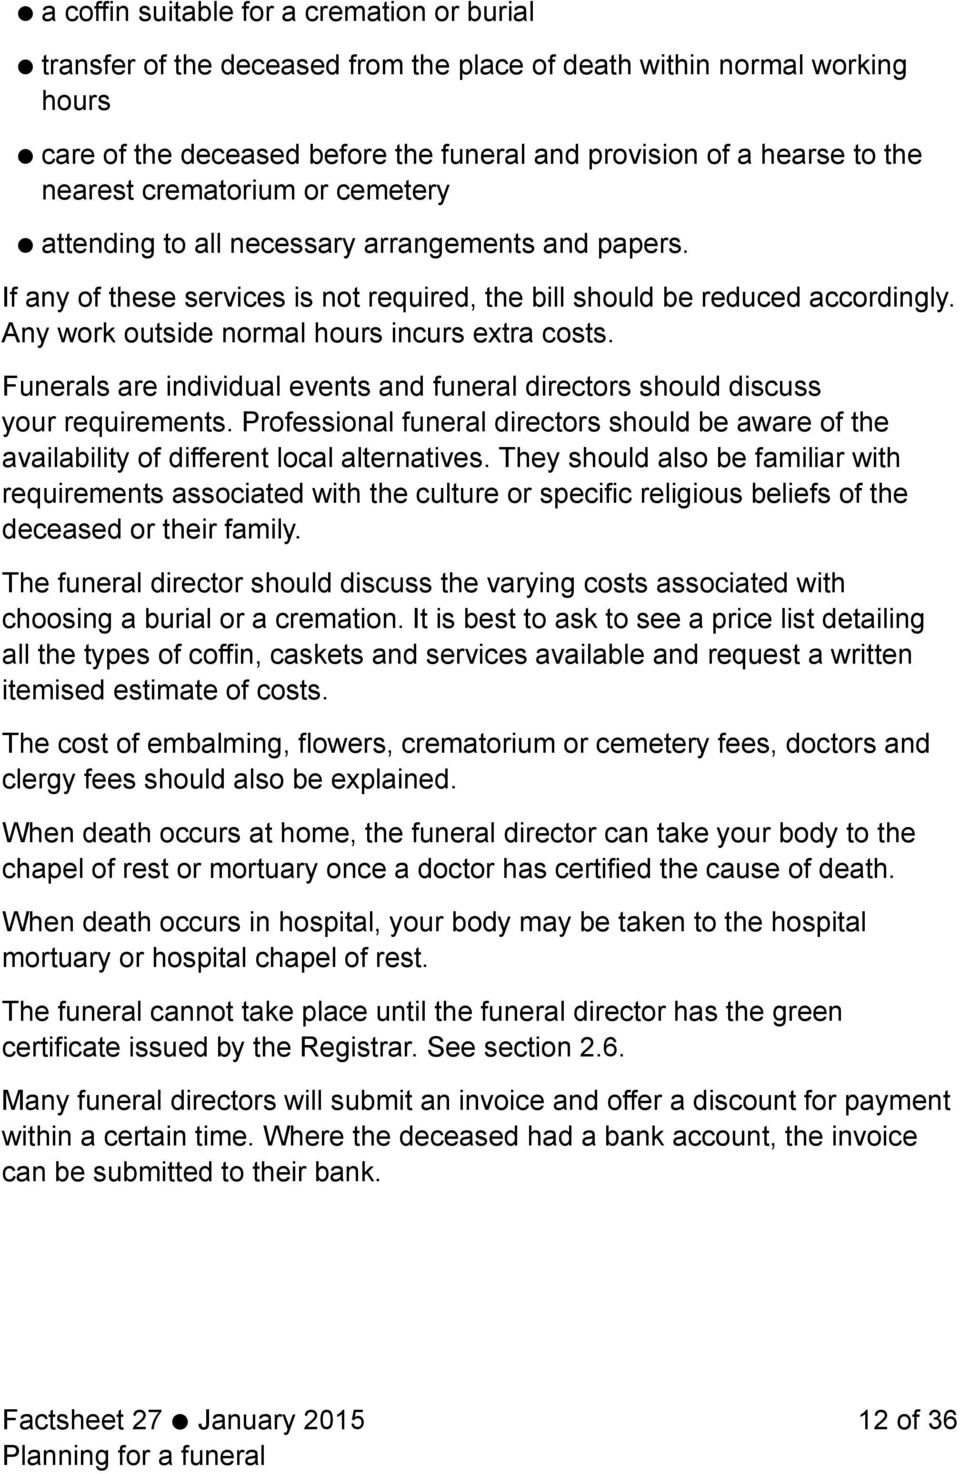 Any work outside normal hours incurs extra costs. Funerals are individual events and funeral directors should discuss your requirements.